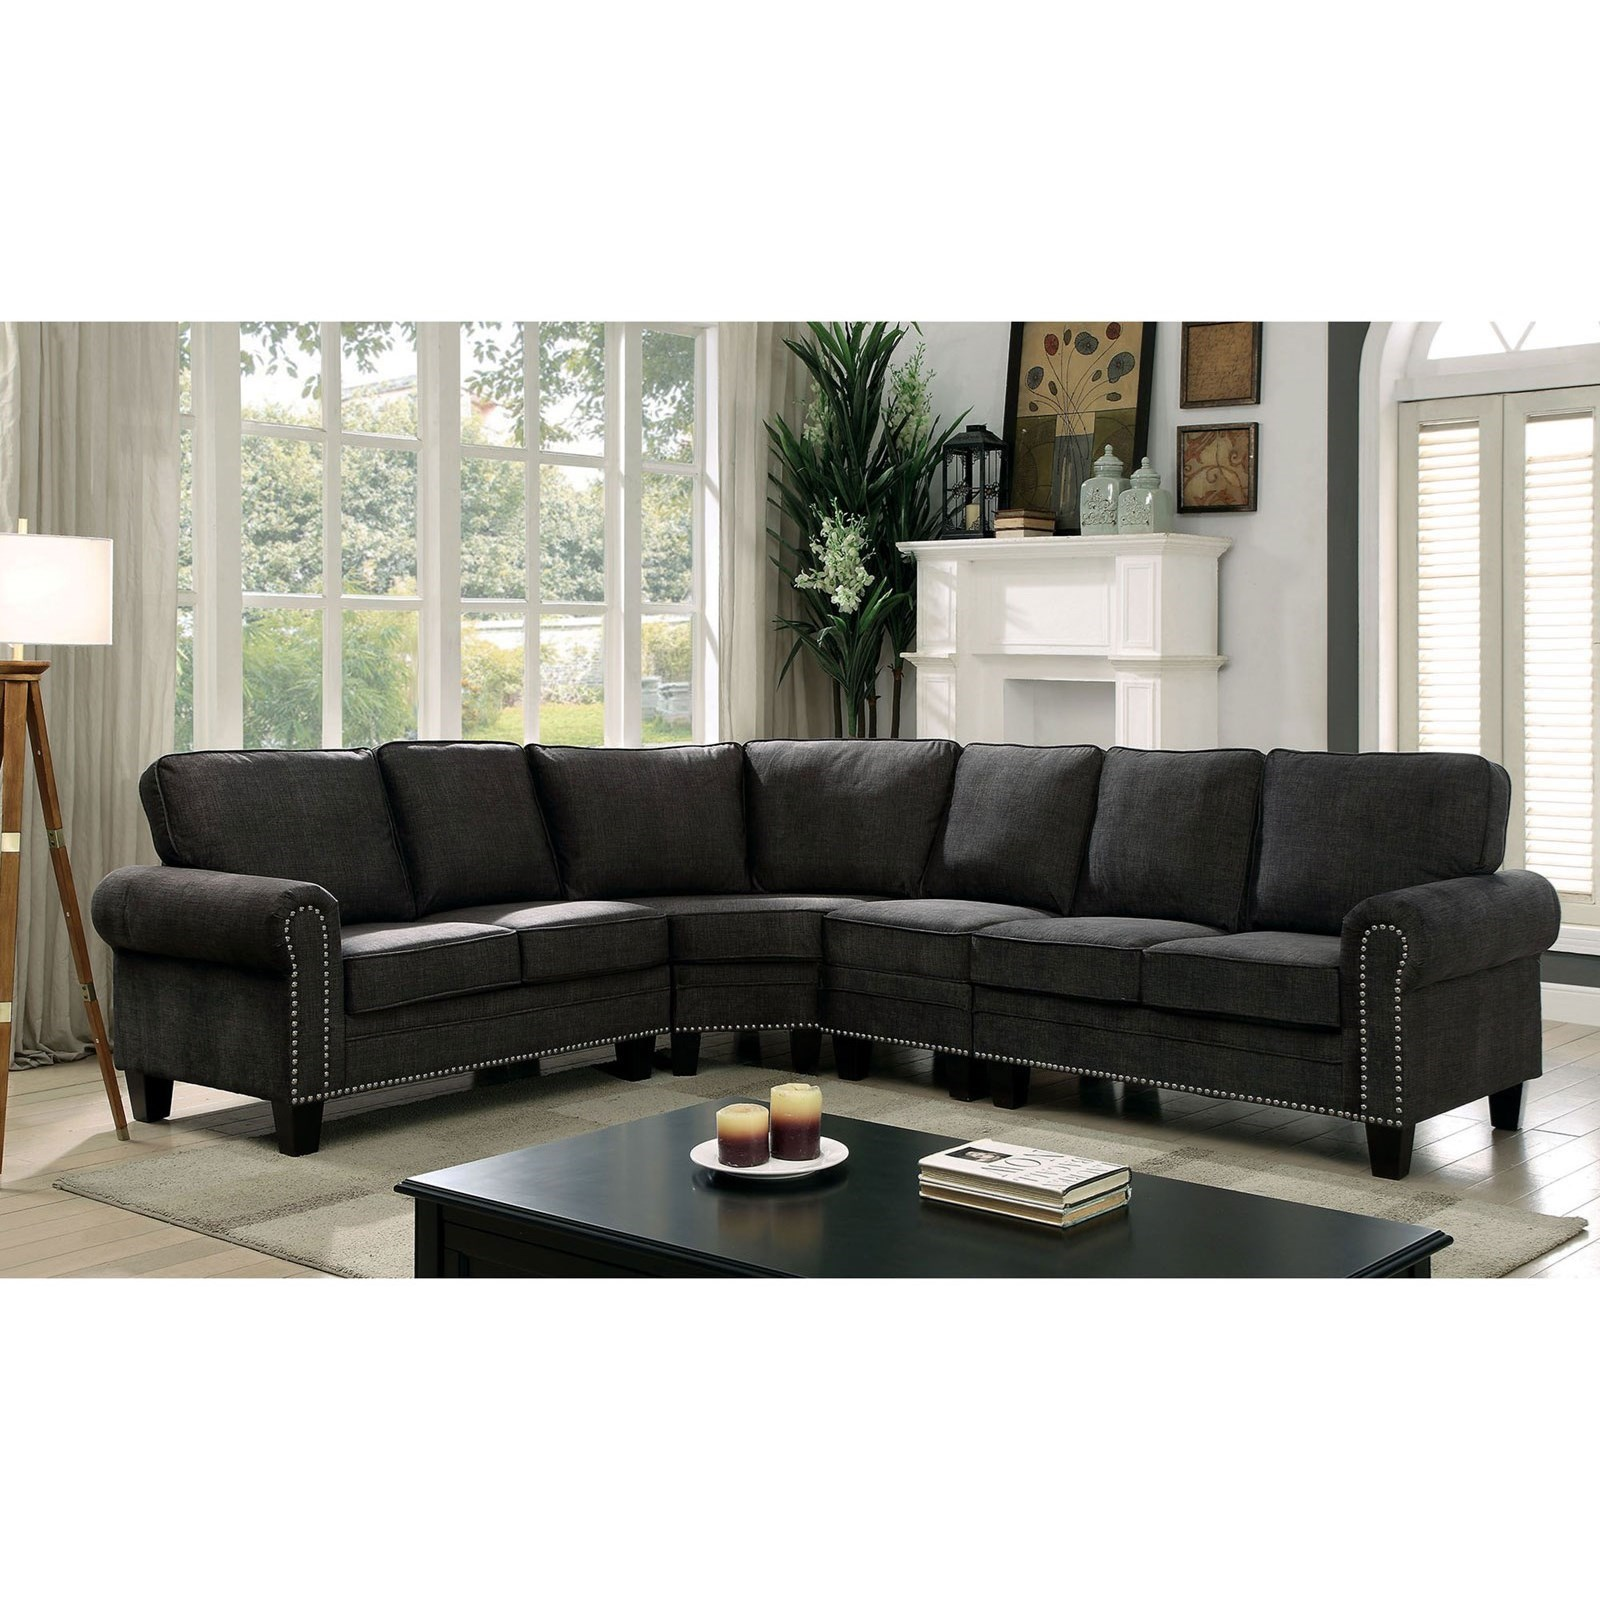 Fine Elwick Transitional Five Seat Sectional Sofa With Nailheads By Furniture Of America At Rooms For Less Caraccident5 Cool Chair Designs And Ideas Caraccident5Info